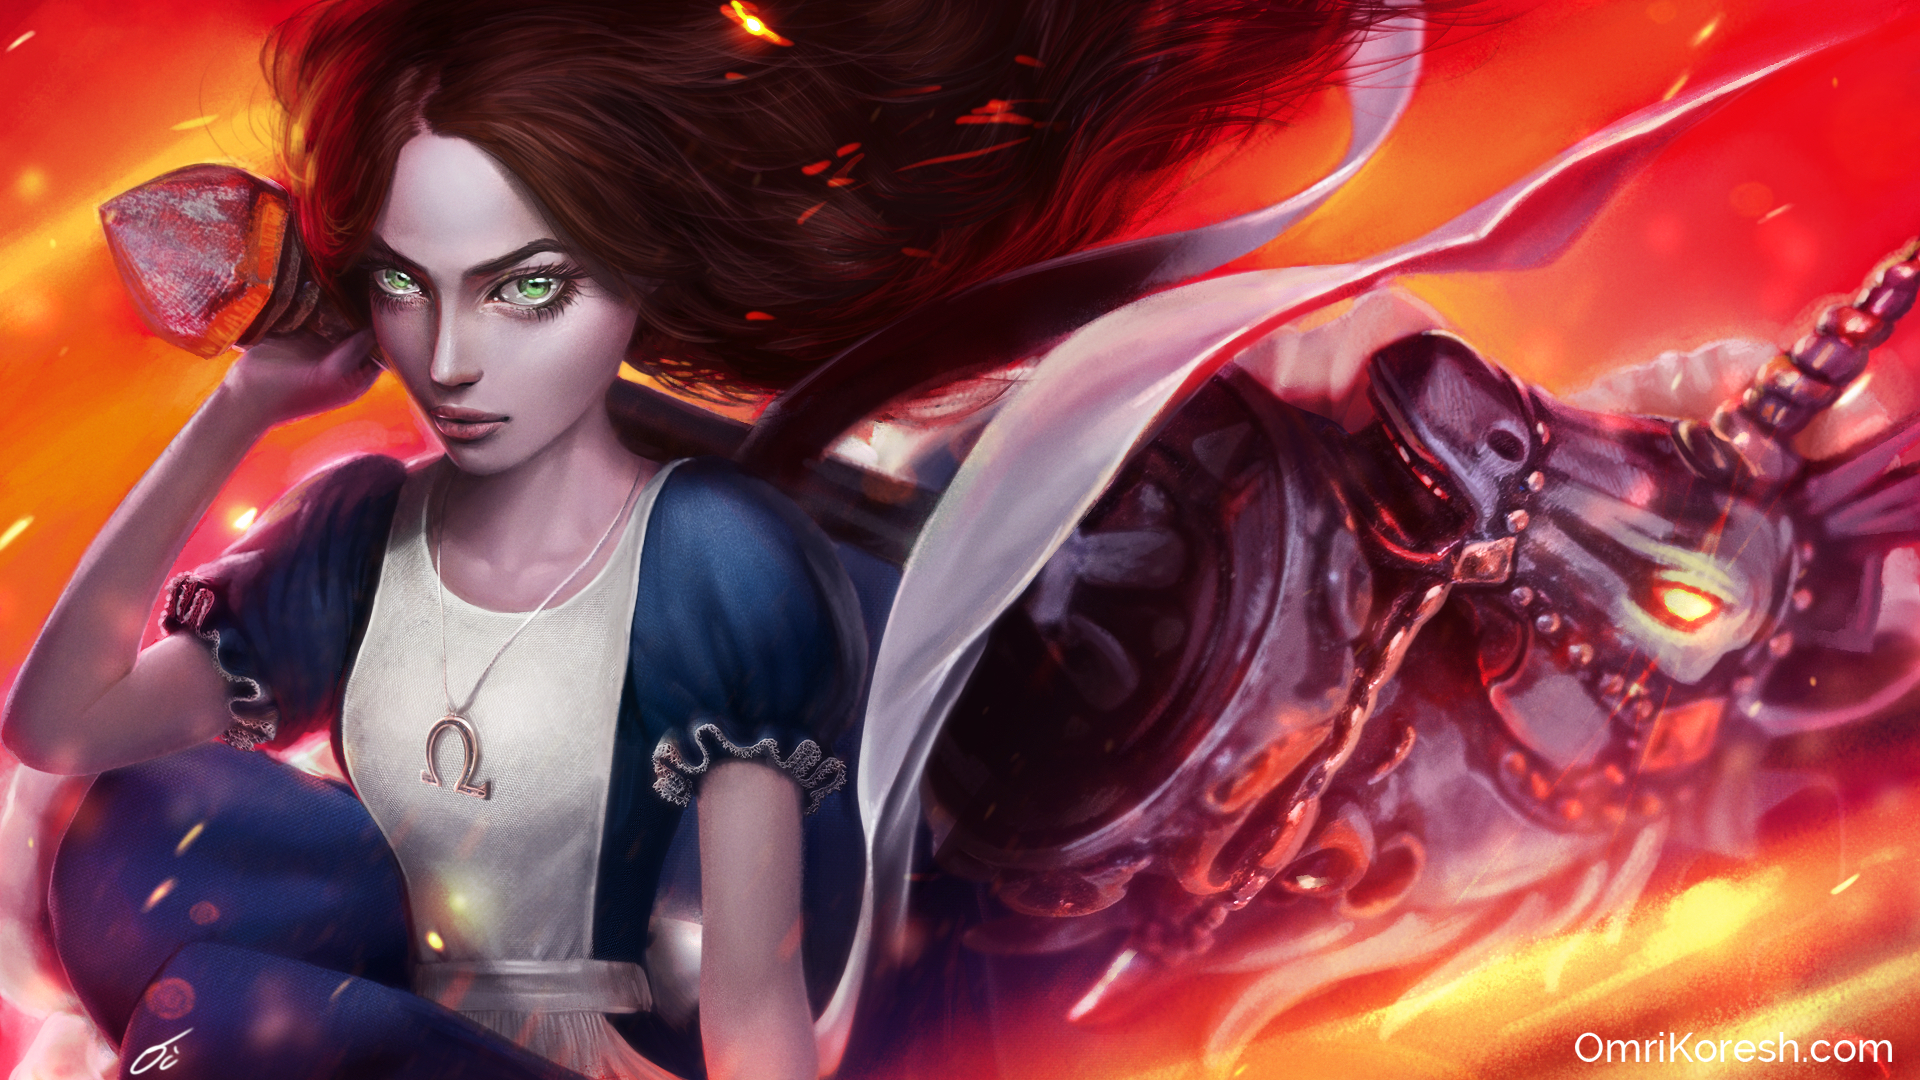 Alice madness returns, digital art, wallpaper, omri koresh, bobby horse